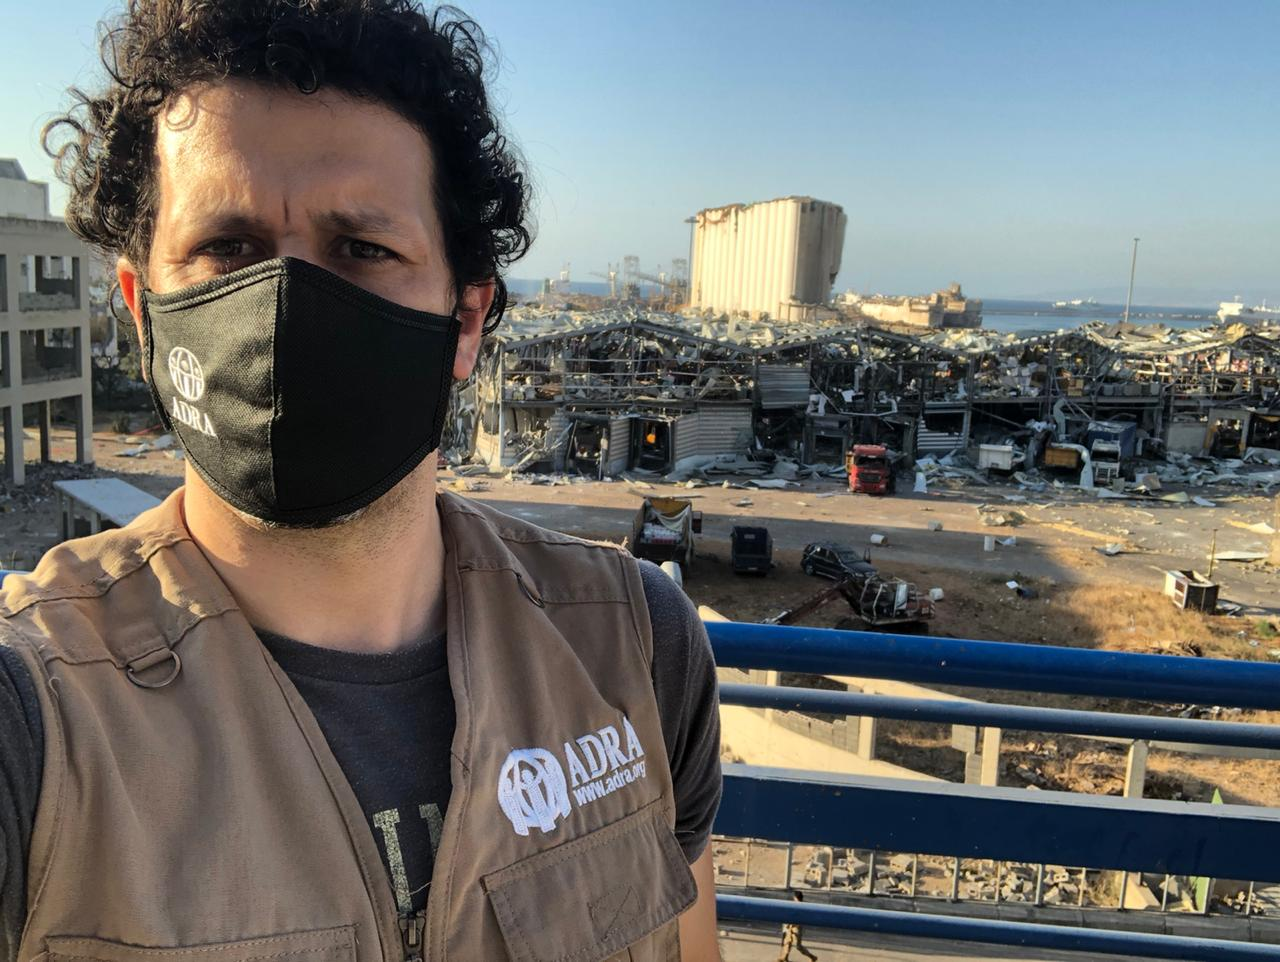 ADRA worker takes a selfie showcasing the rubble left behind by a massive explosion, which decimated Beirut's port